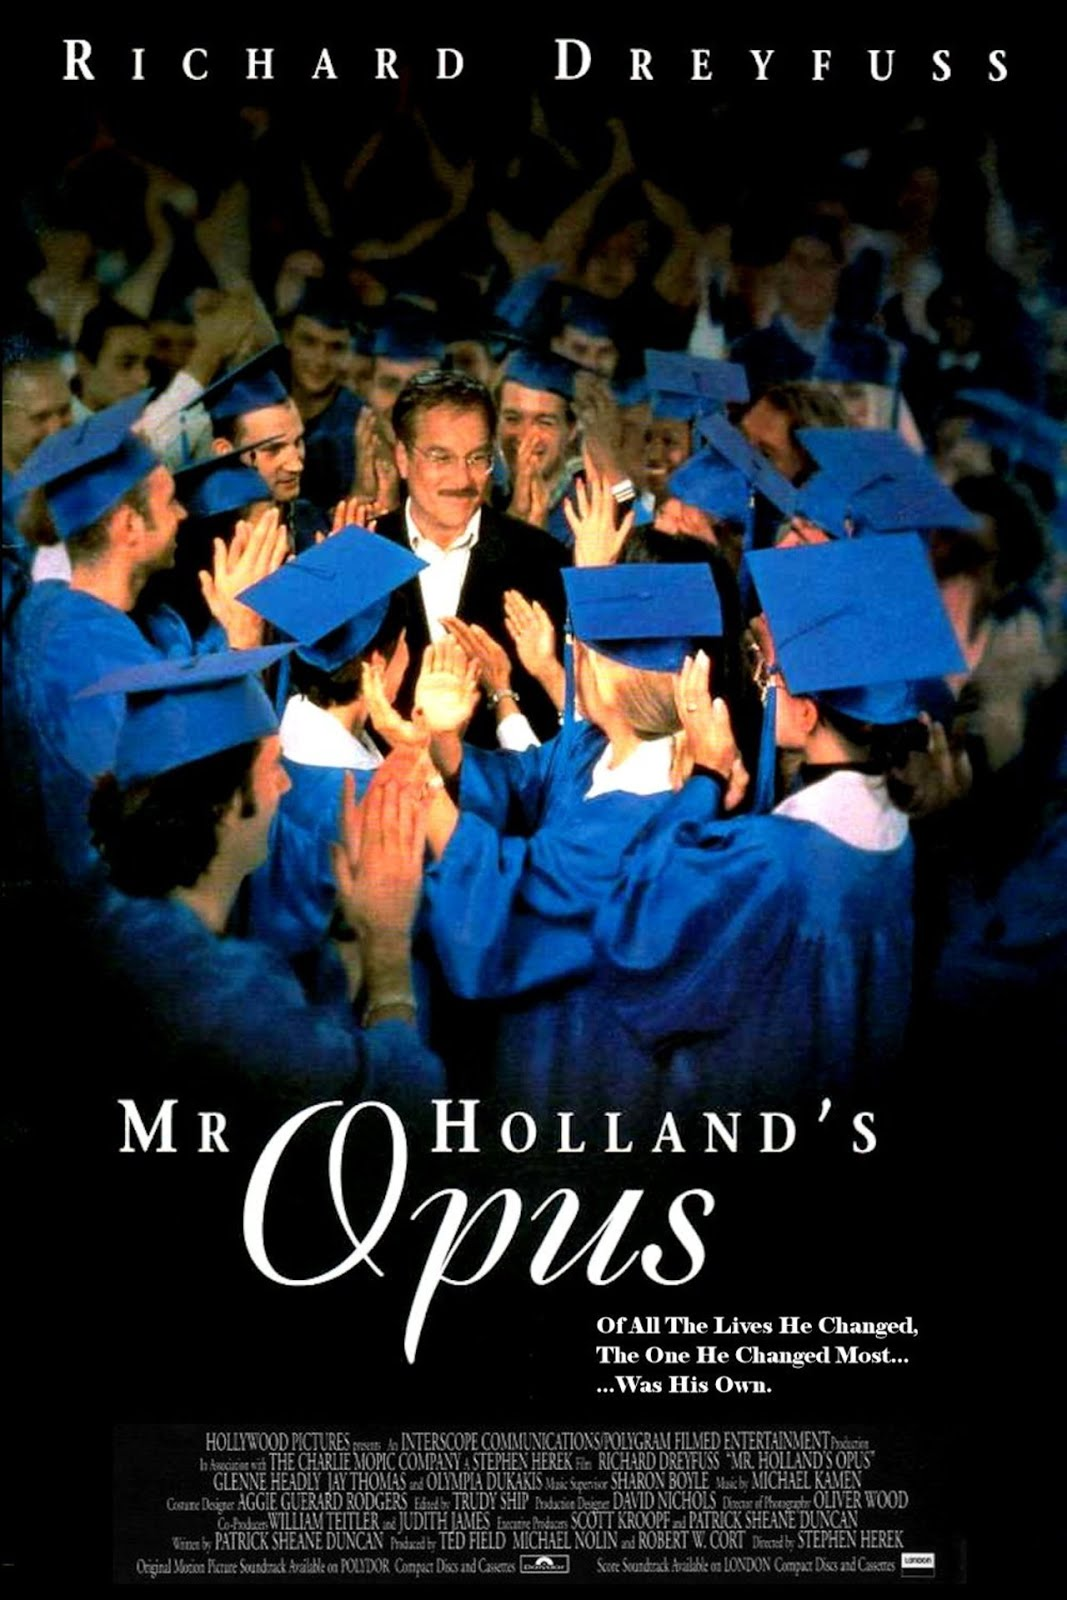 movie review on mr holland opus